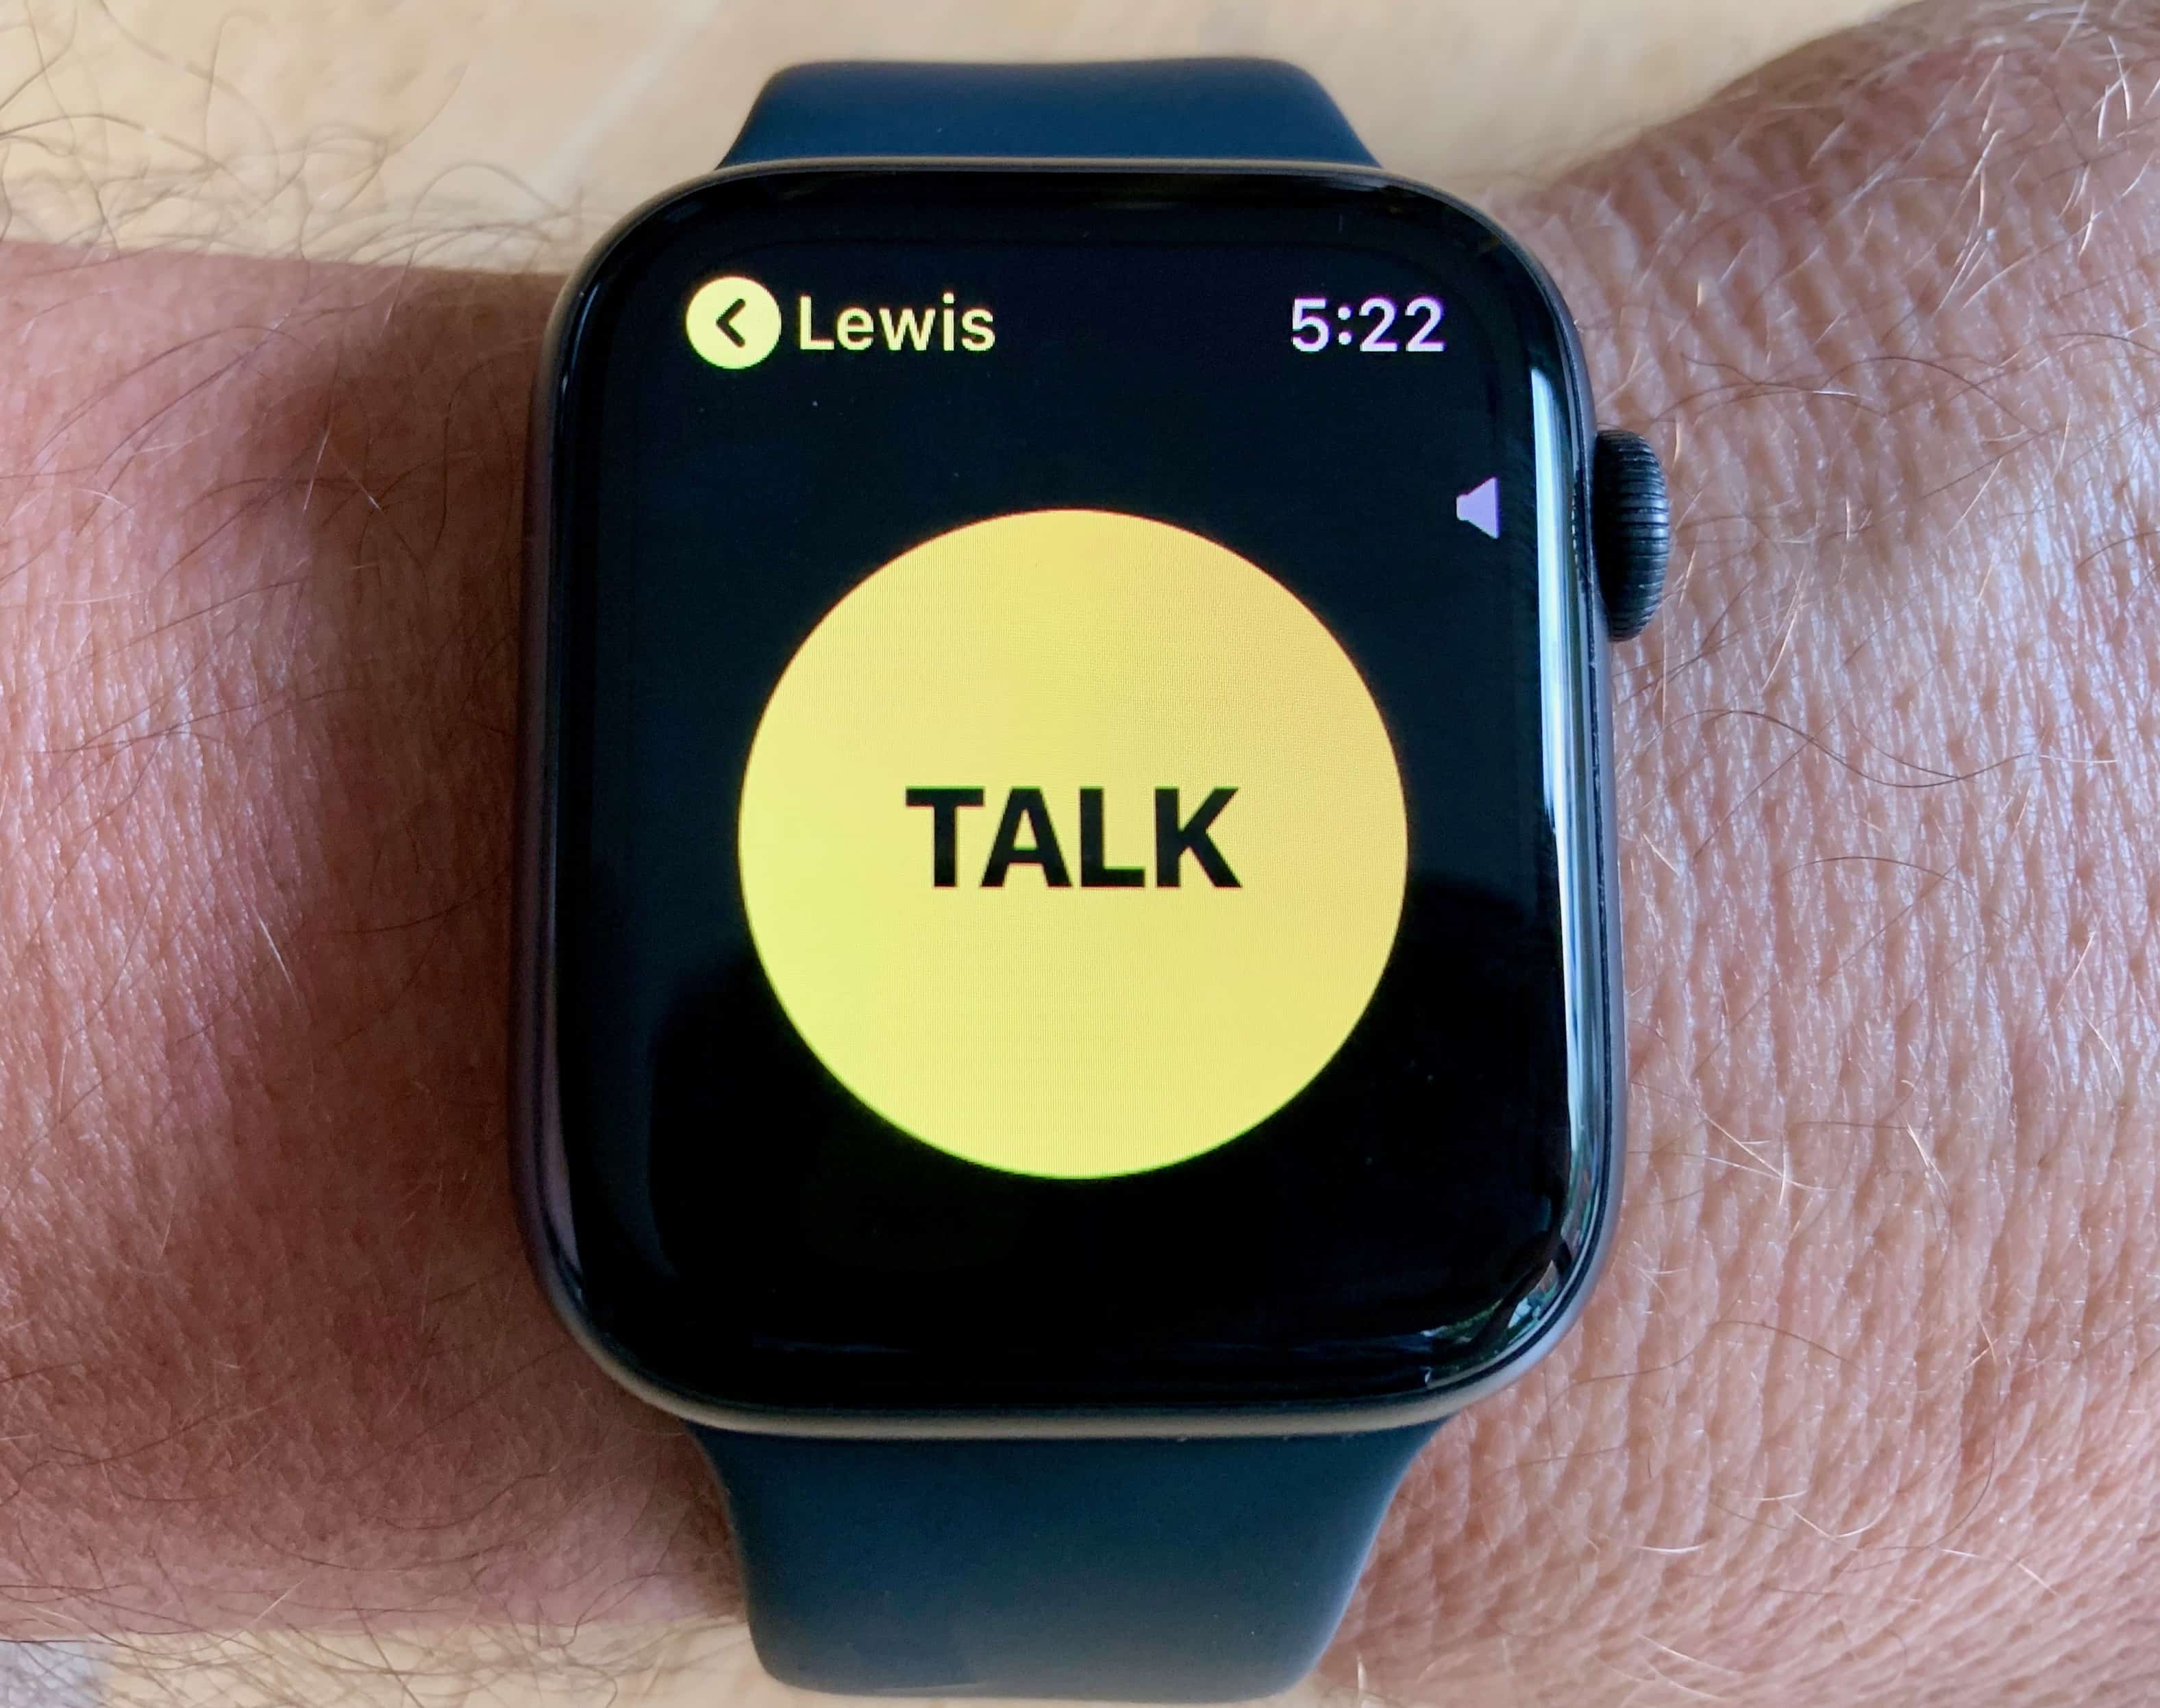 The Apple Watch Walkie Talkie app is a great way to chat with family and friends.